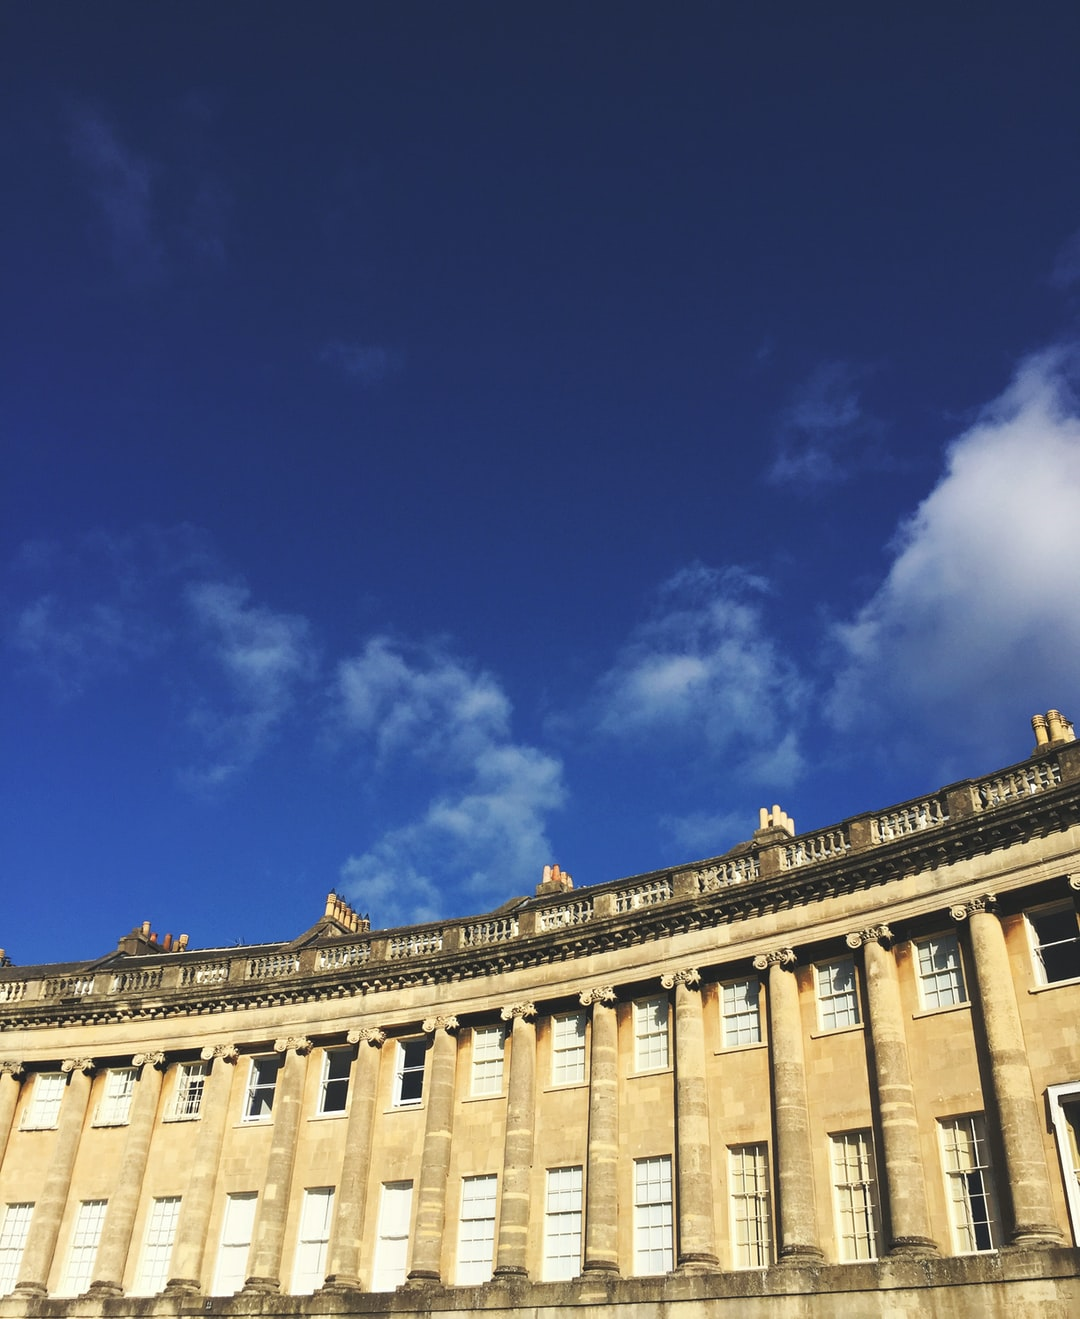 Simply, The Royal Crescent in Bath, Somerset.